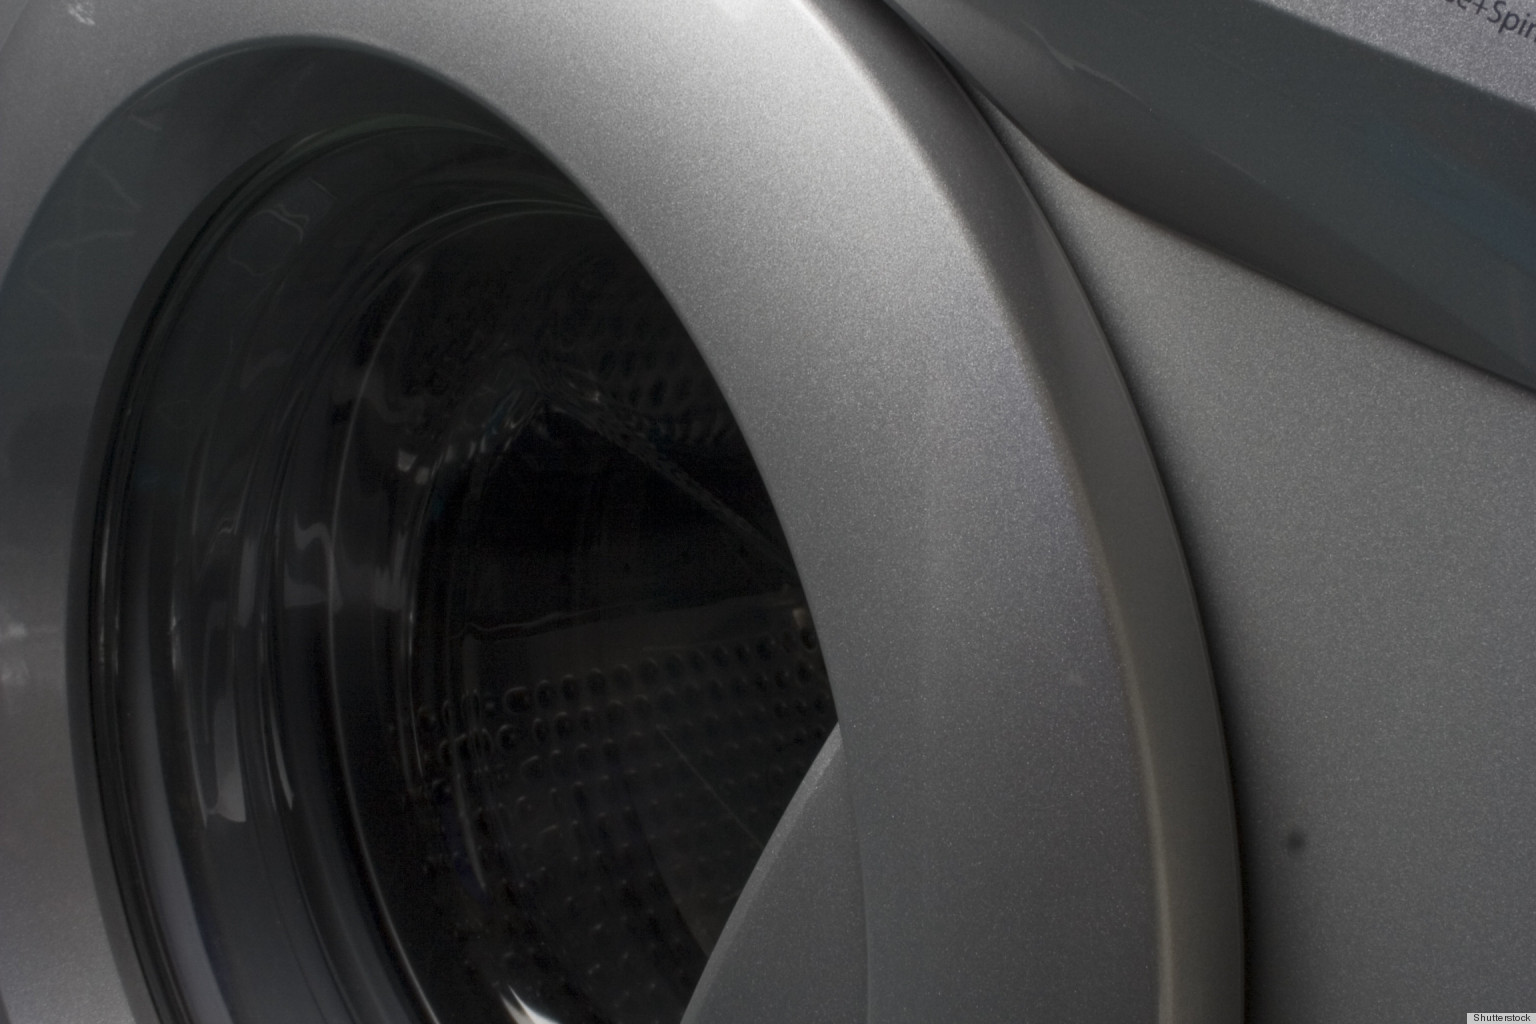 how to clean inside of washing machine with vinegar